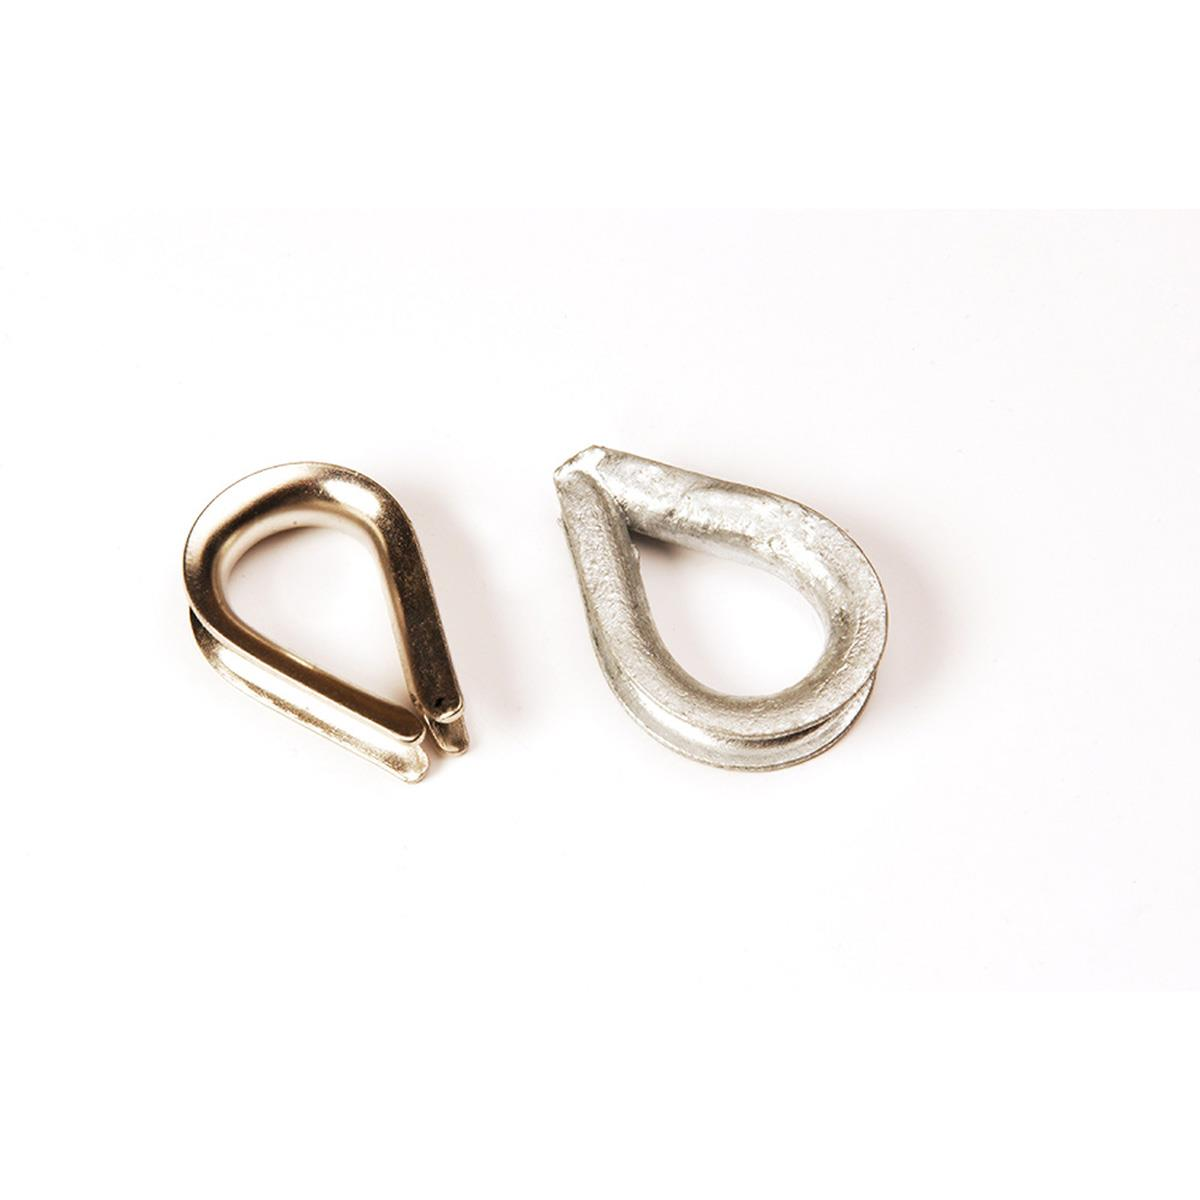 6mm Stainless Steel Rope Thimble